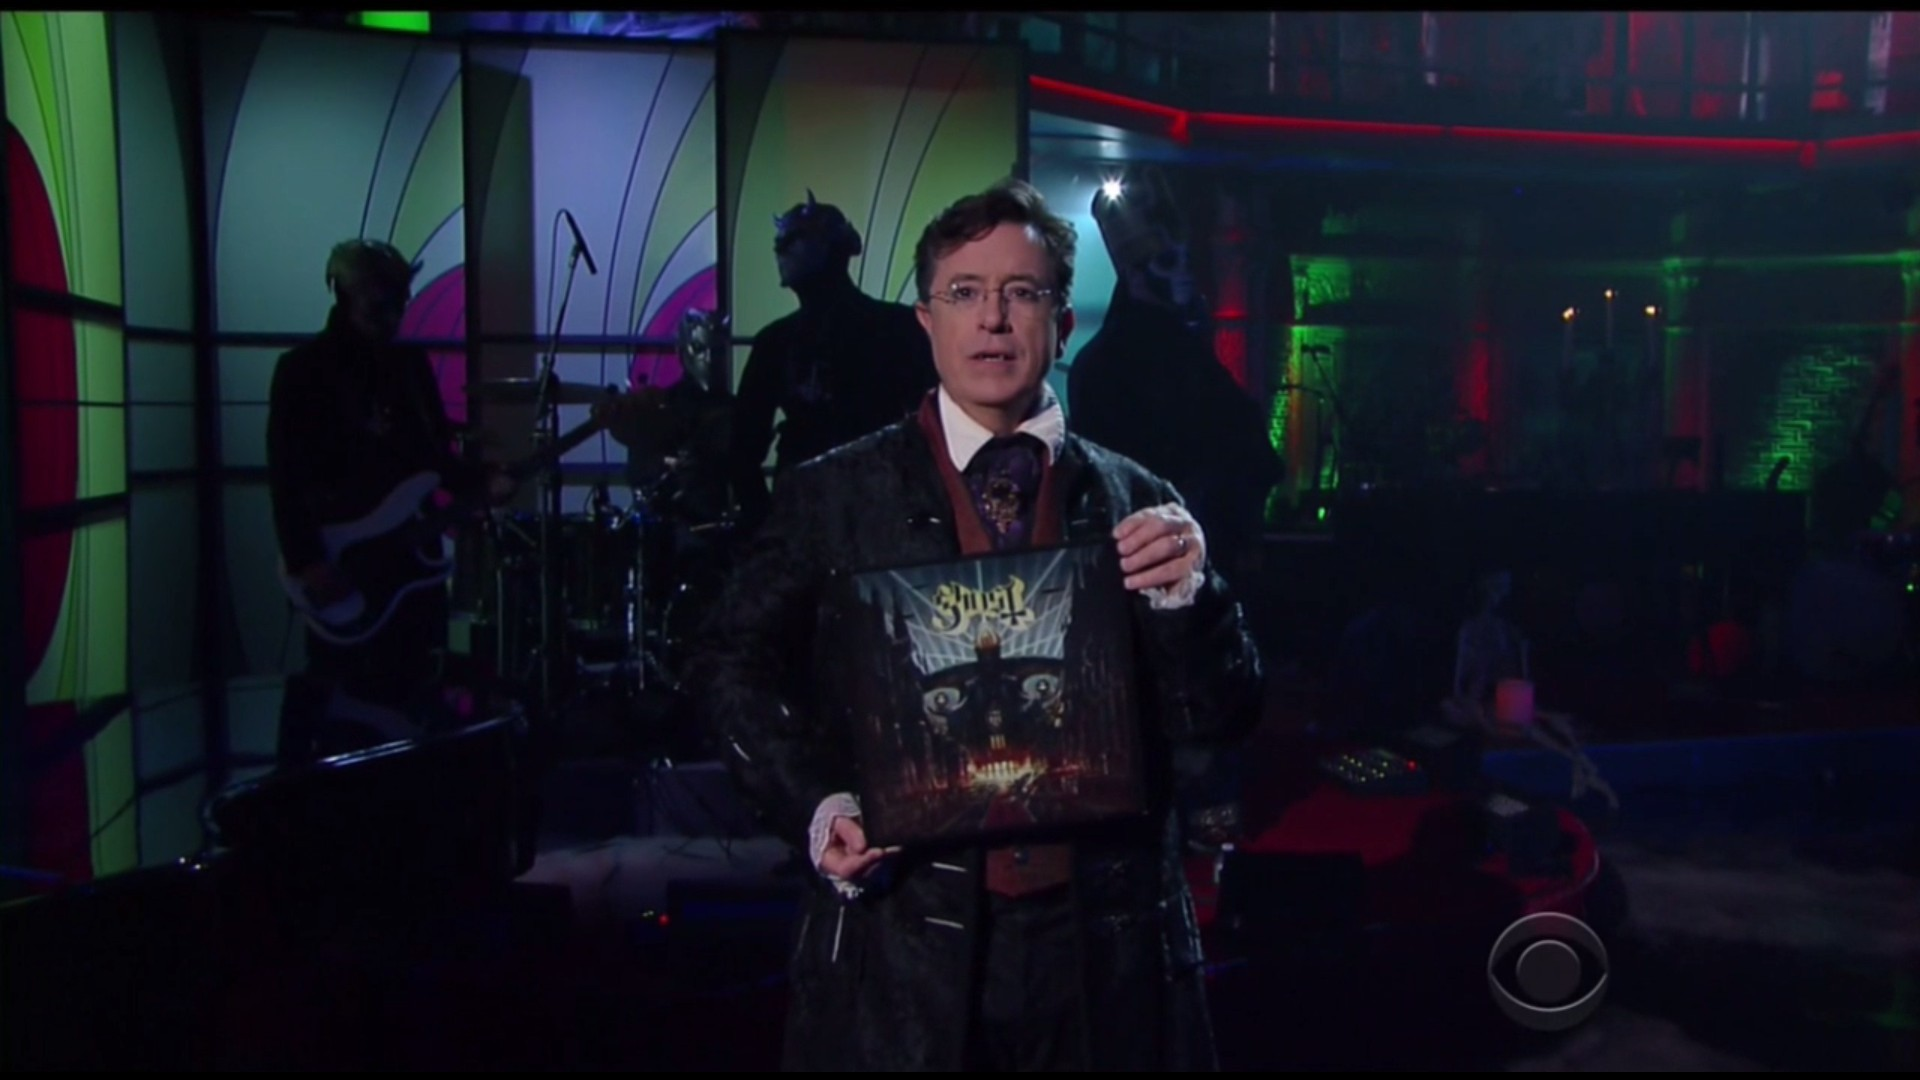 Ghost Performs Live On The Late Show With Stephen Colbert